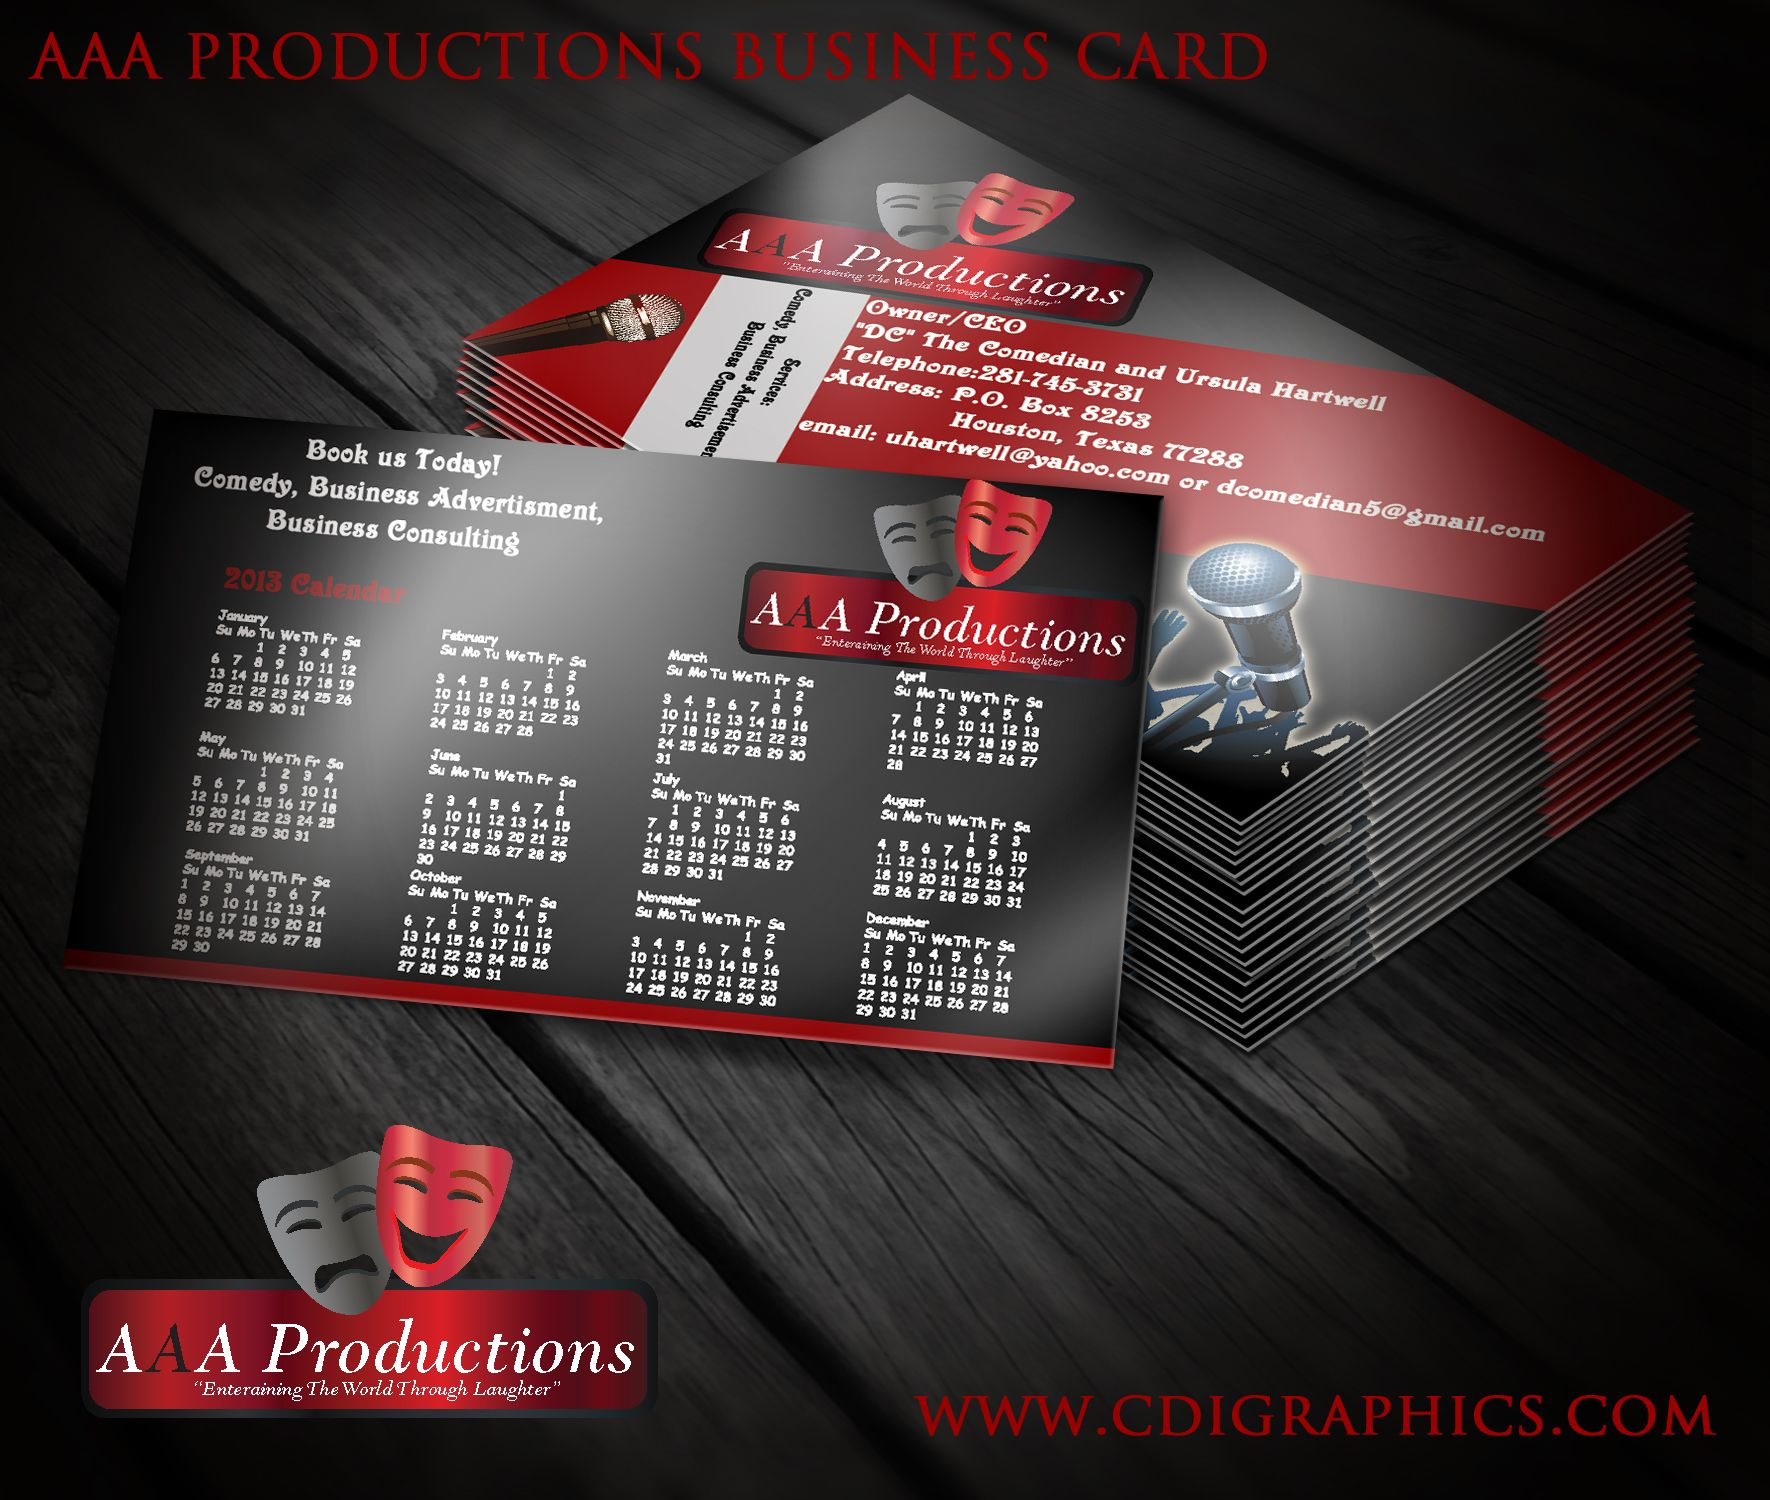 Aaa productions business cards and logo design cdstudios aaa productions business cards and logo design magicingreecefo Image collections